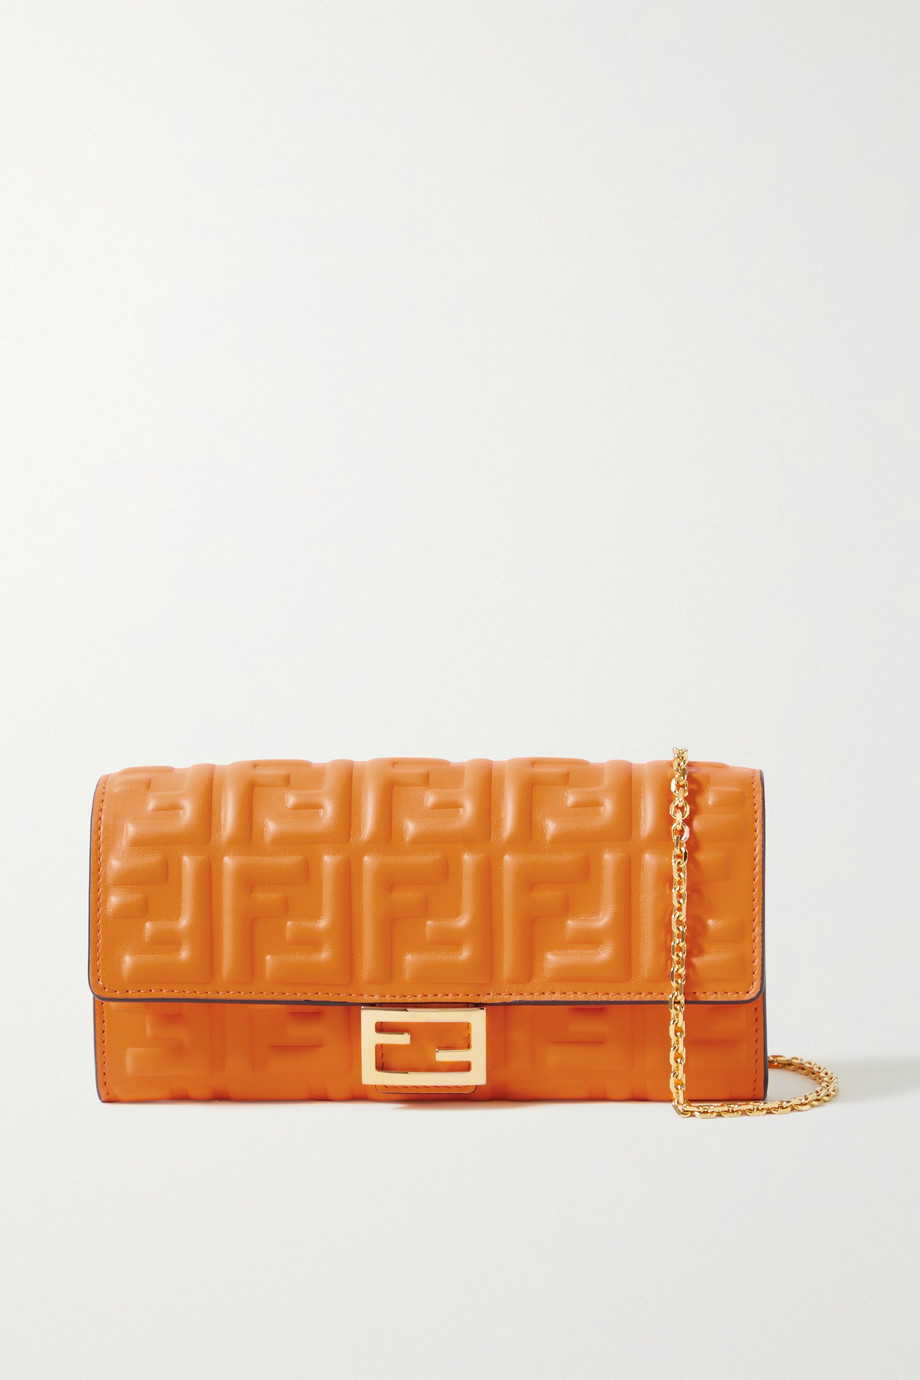 FENDI Baguette embossed leather clutch